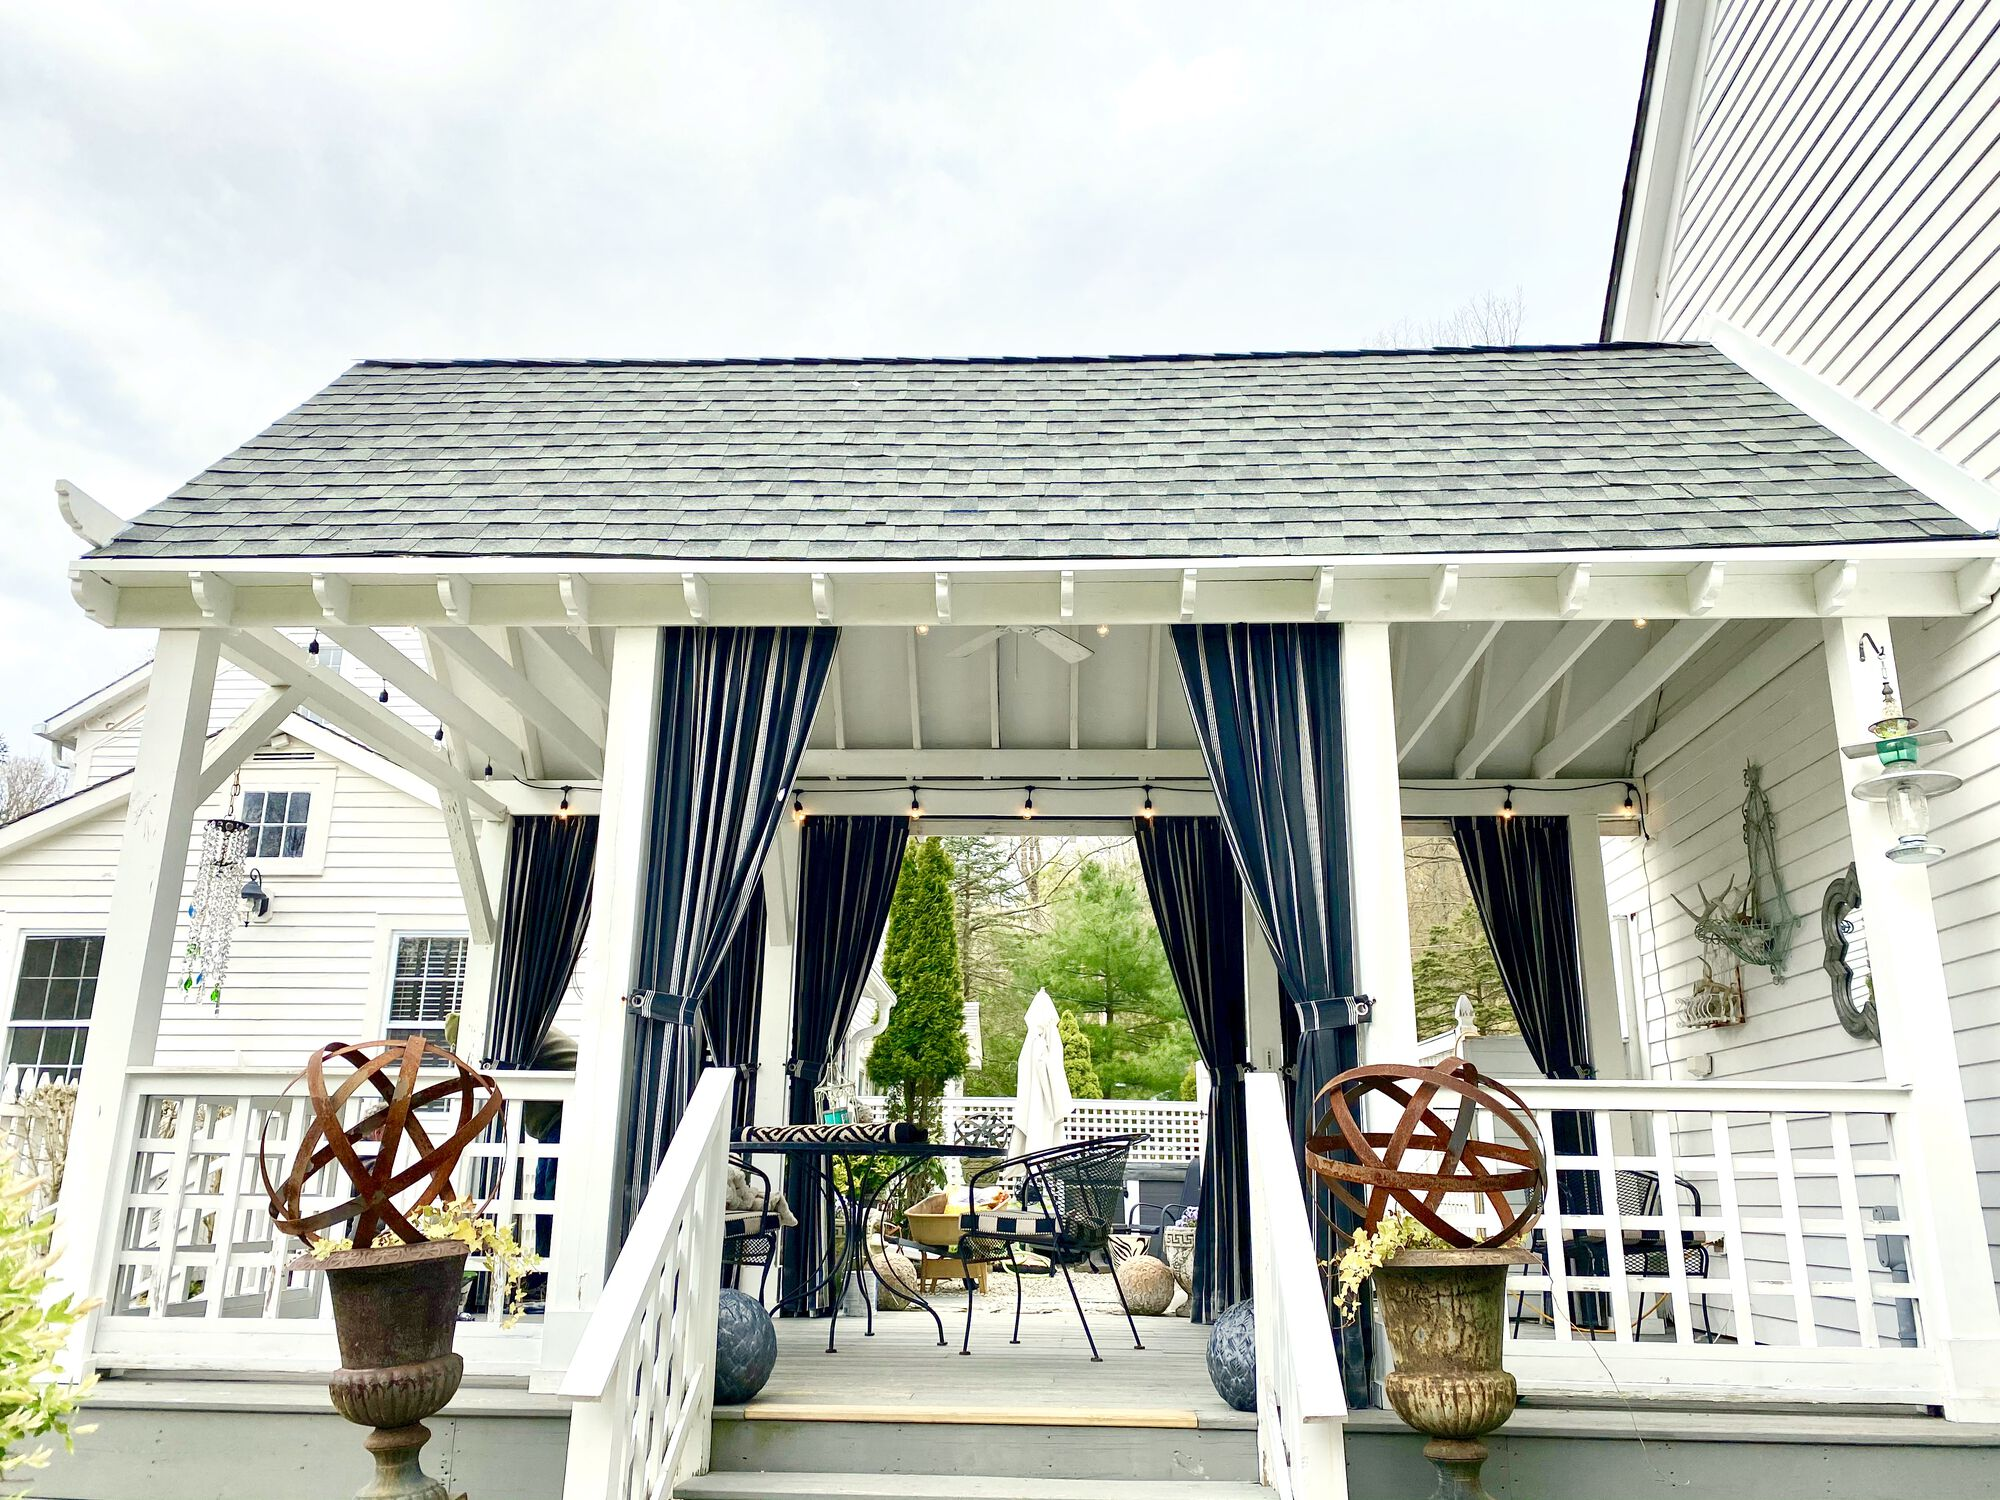 Covered Porch Roofing and Trim in Sparta, Sussex County NJ